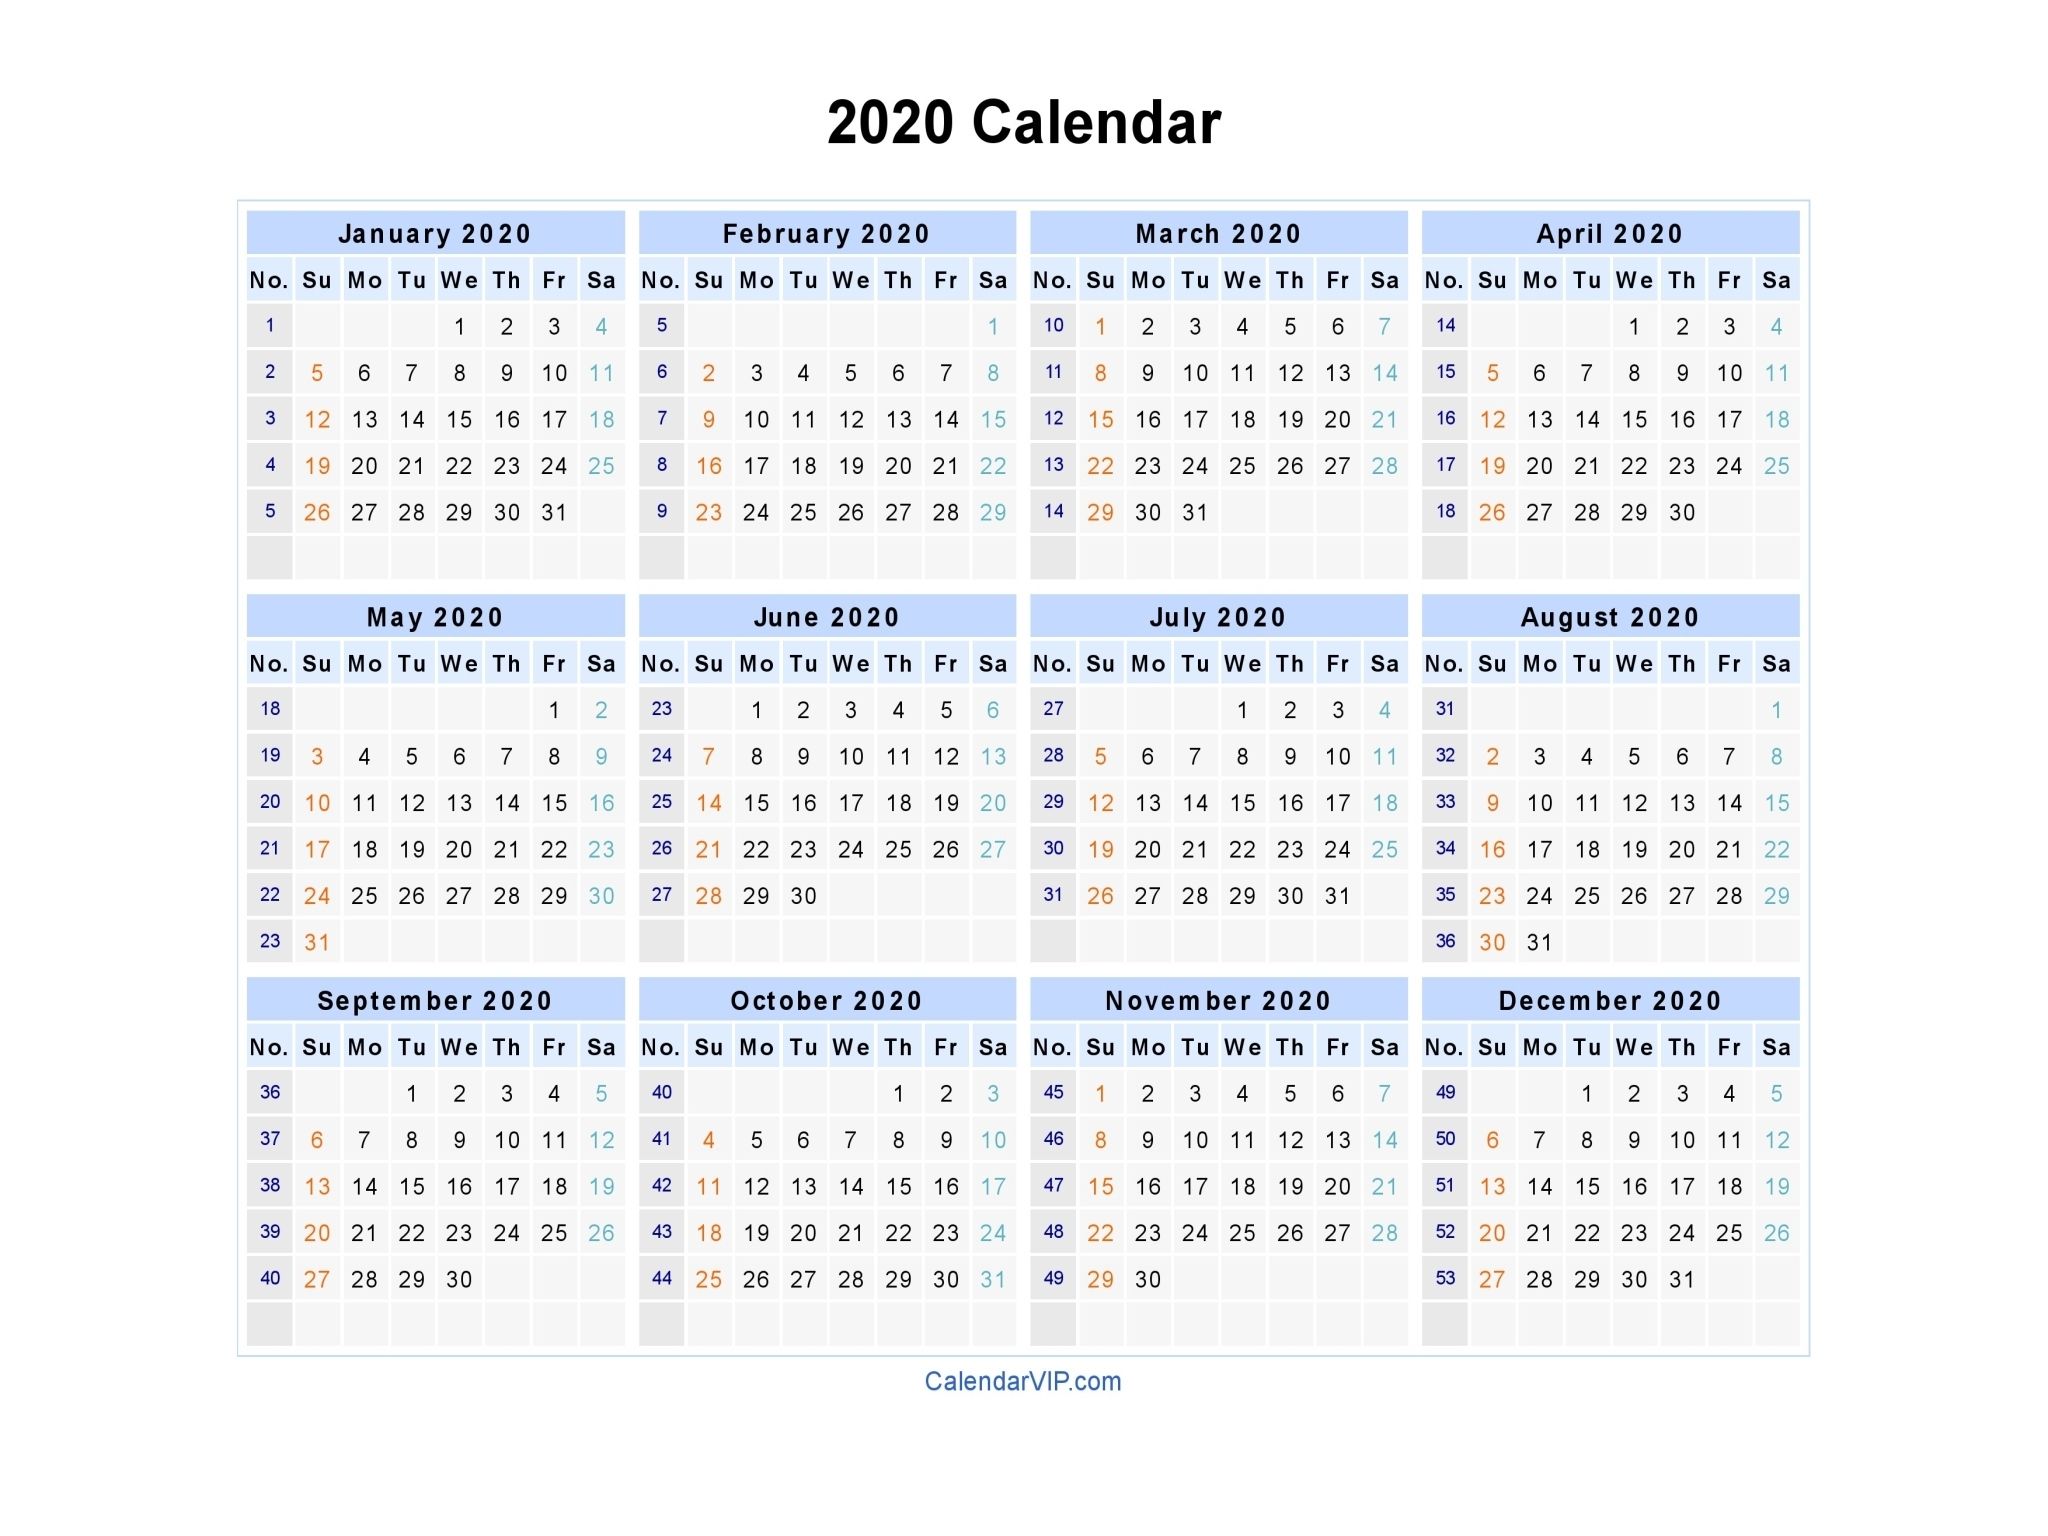 2020 Calendar - Blank Printable Calendar Template In Pdf Word Excel Remarkable 2020 Yearly Calendar Template Word